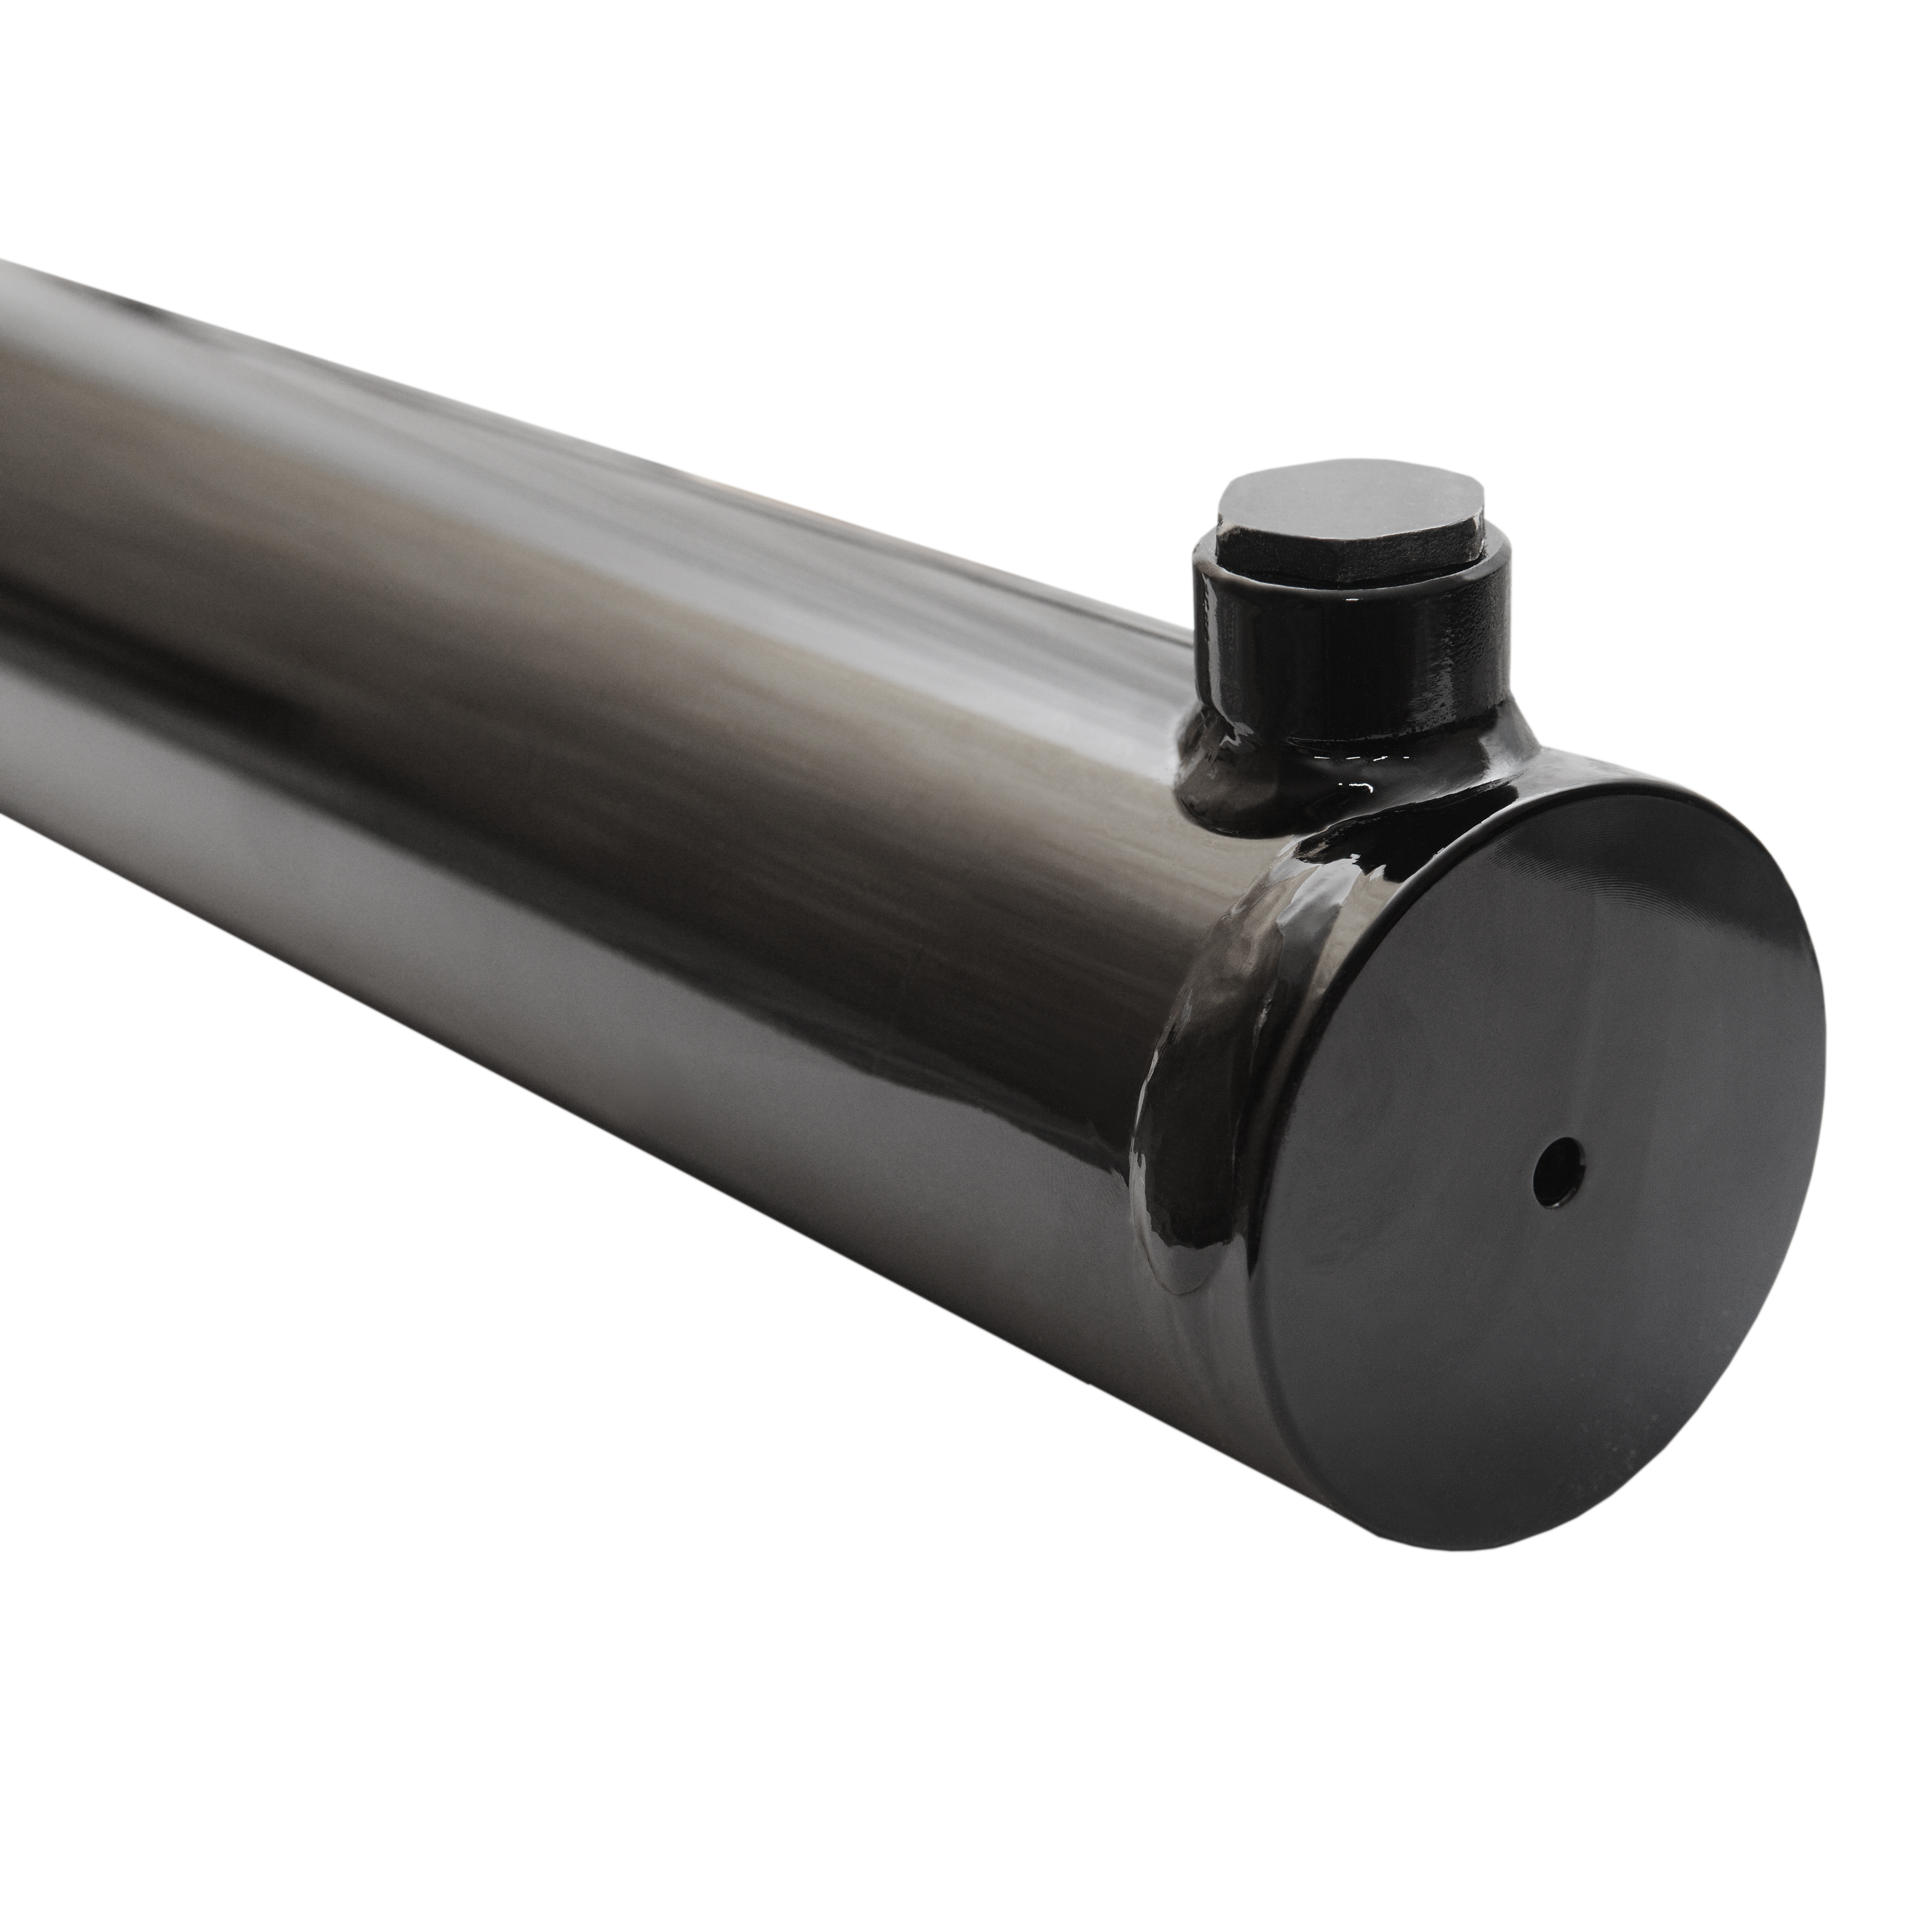 2.5 bore x 9 stroke hydraulic cylinder, welded universal double acting cylinder | Magister Hydraulics